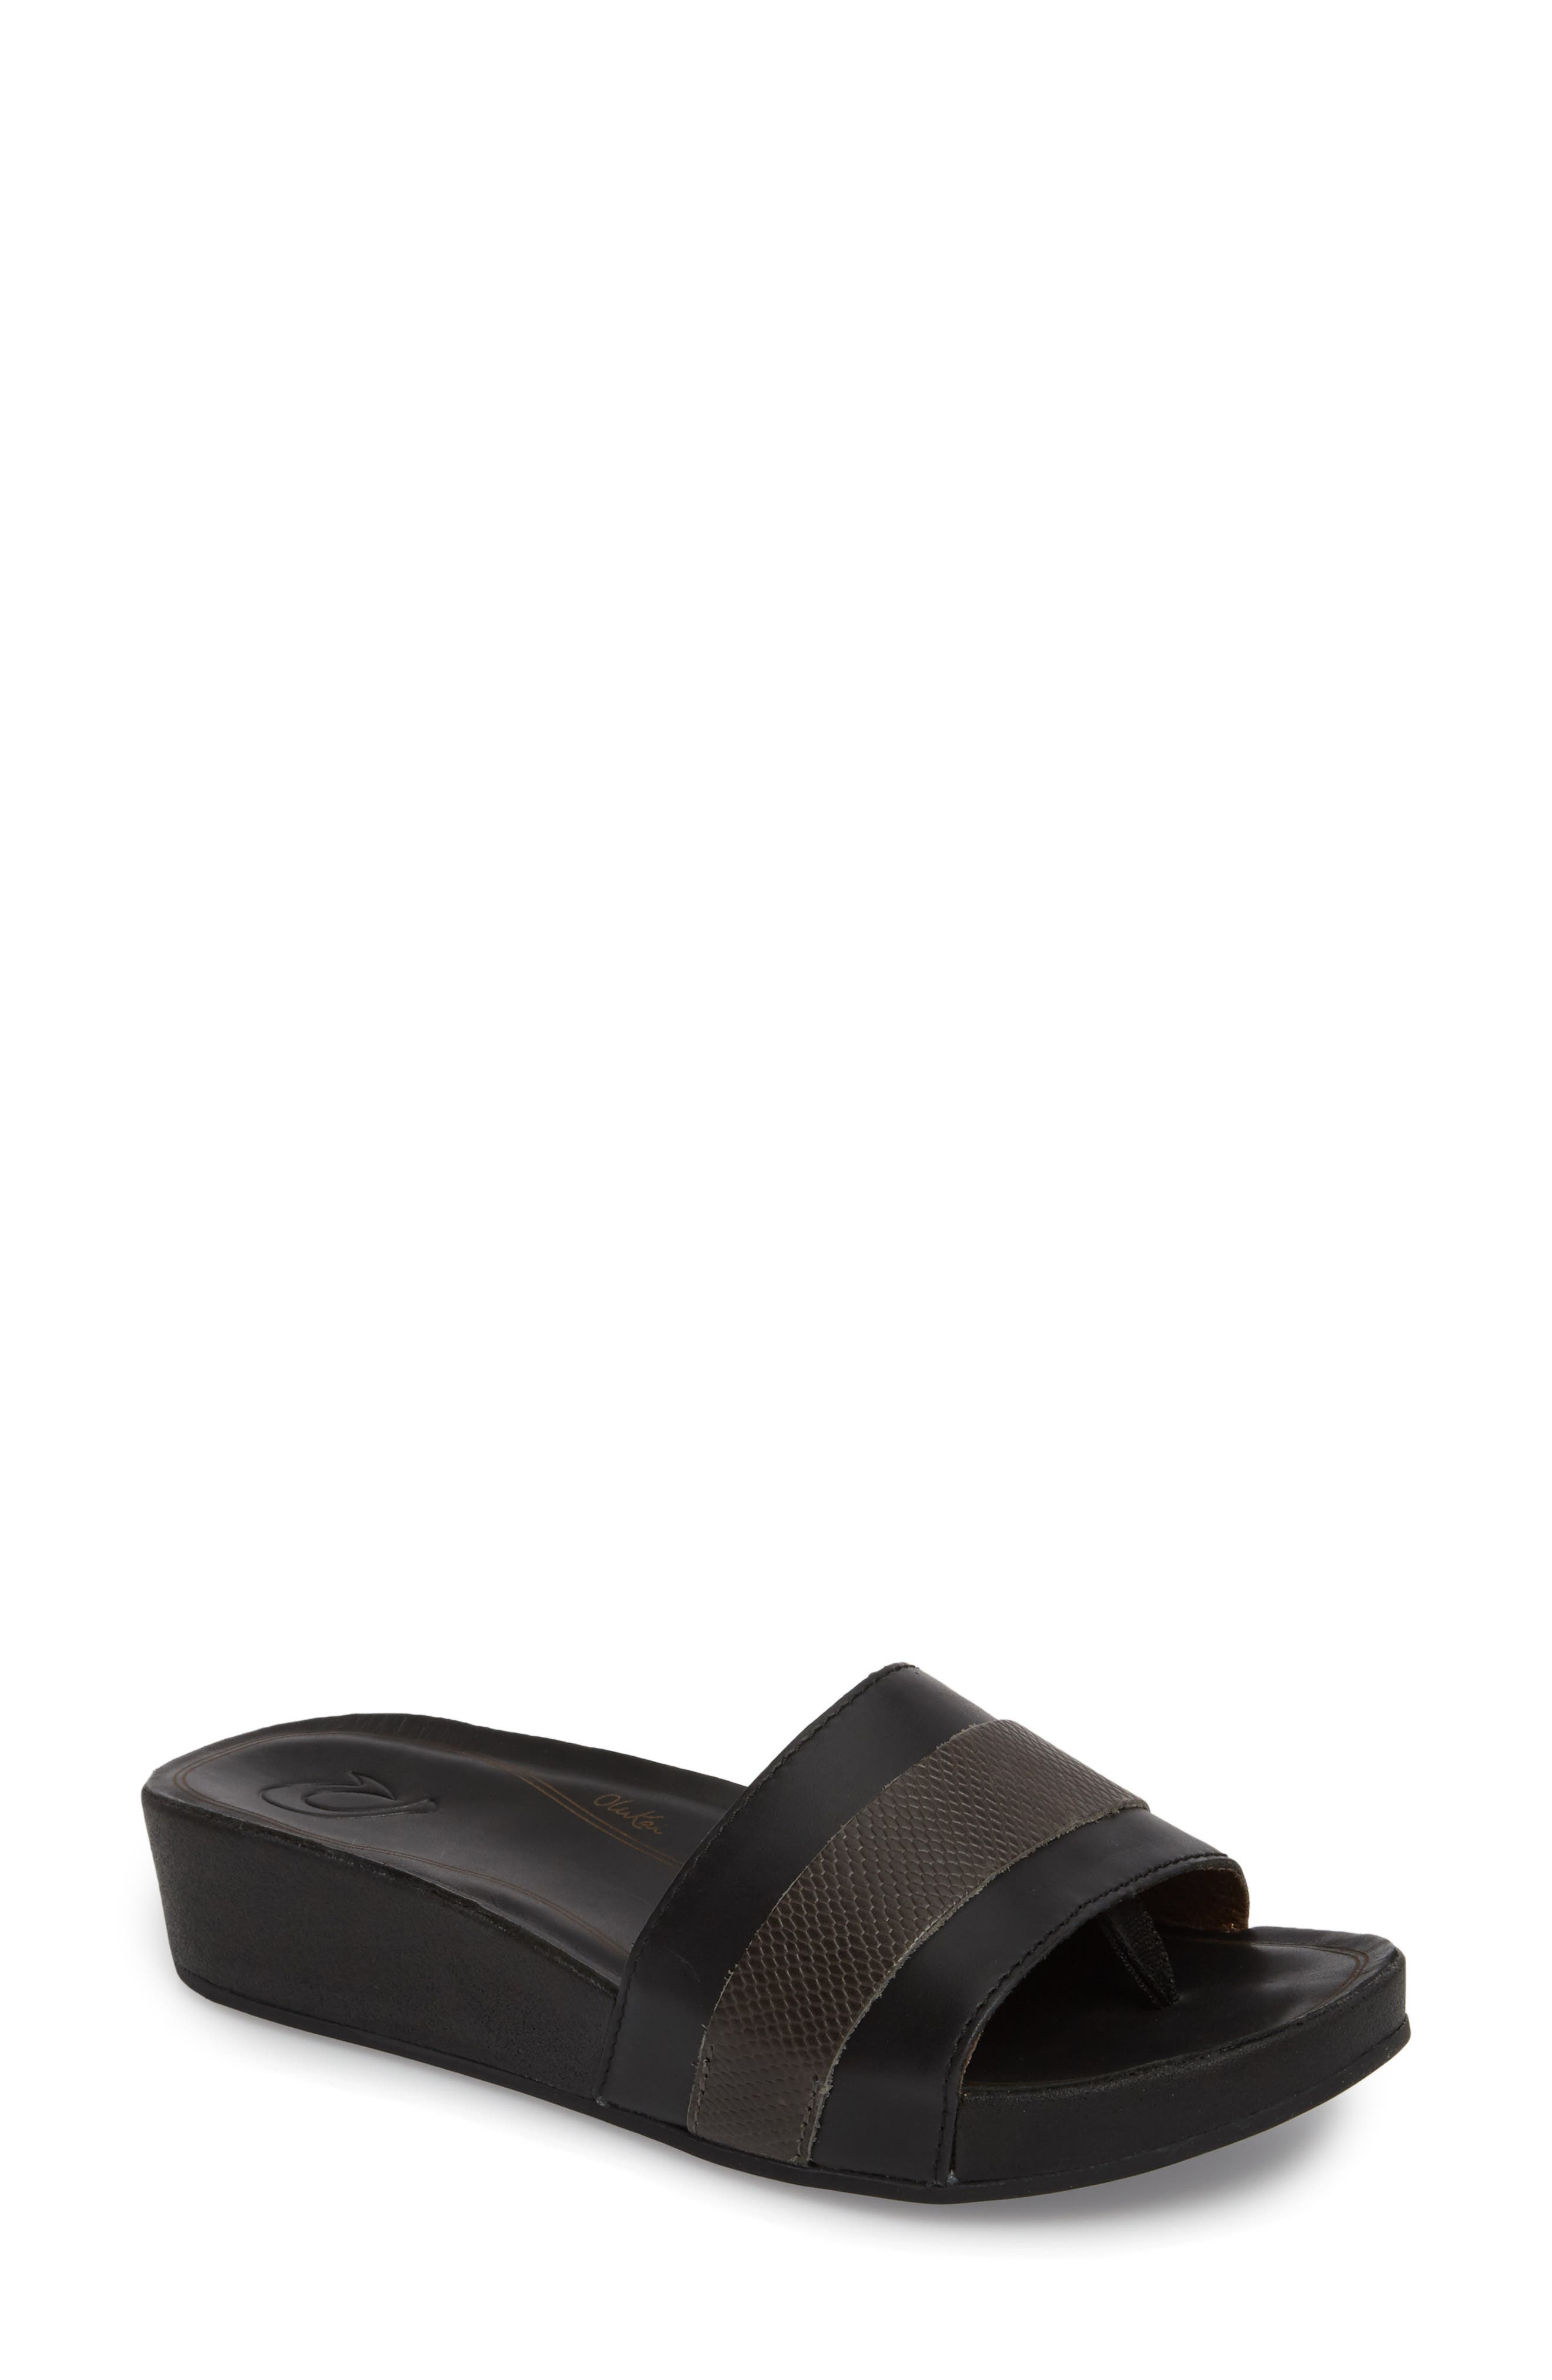 Ola Huna Wedge Sandal,                         Main,                         color, 020